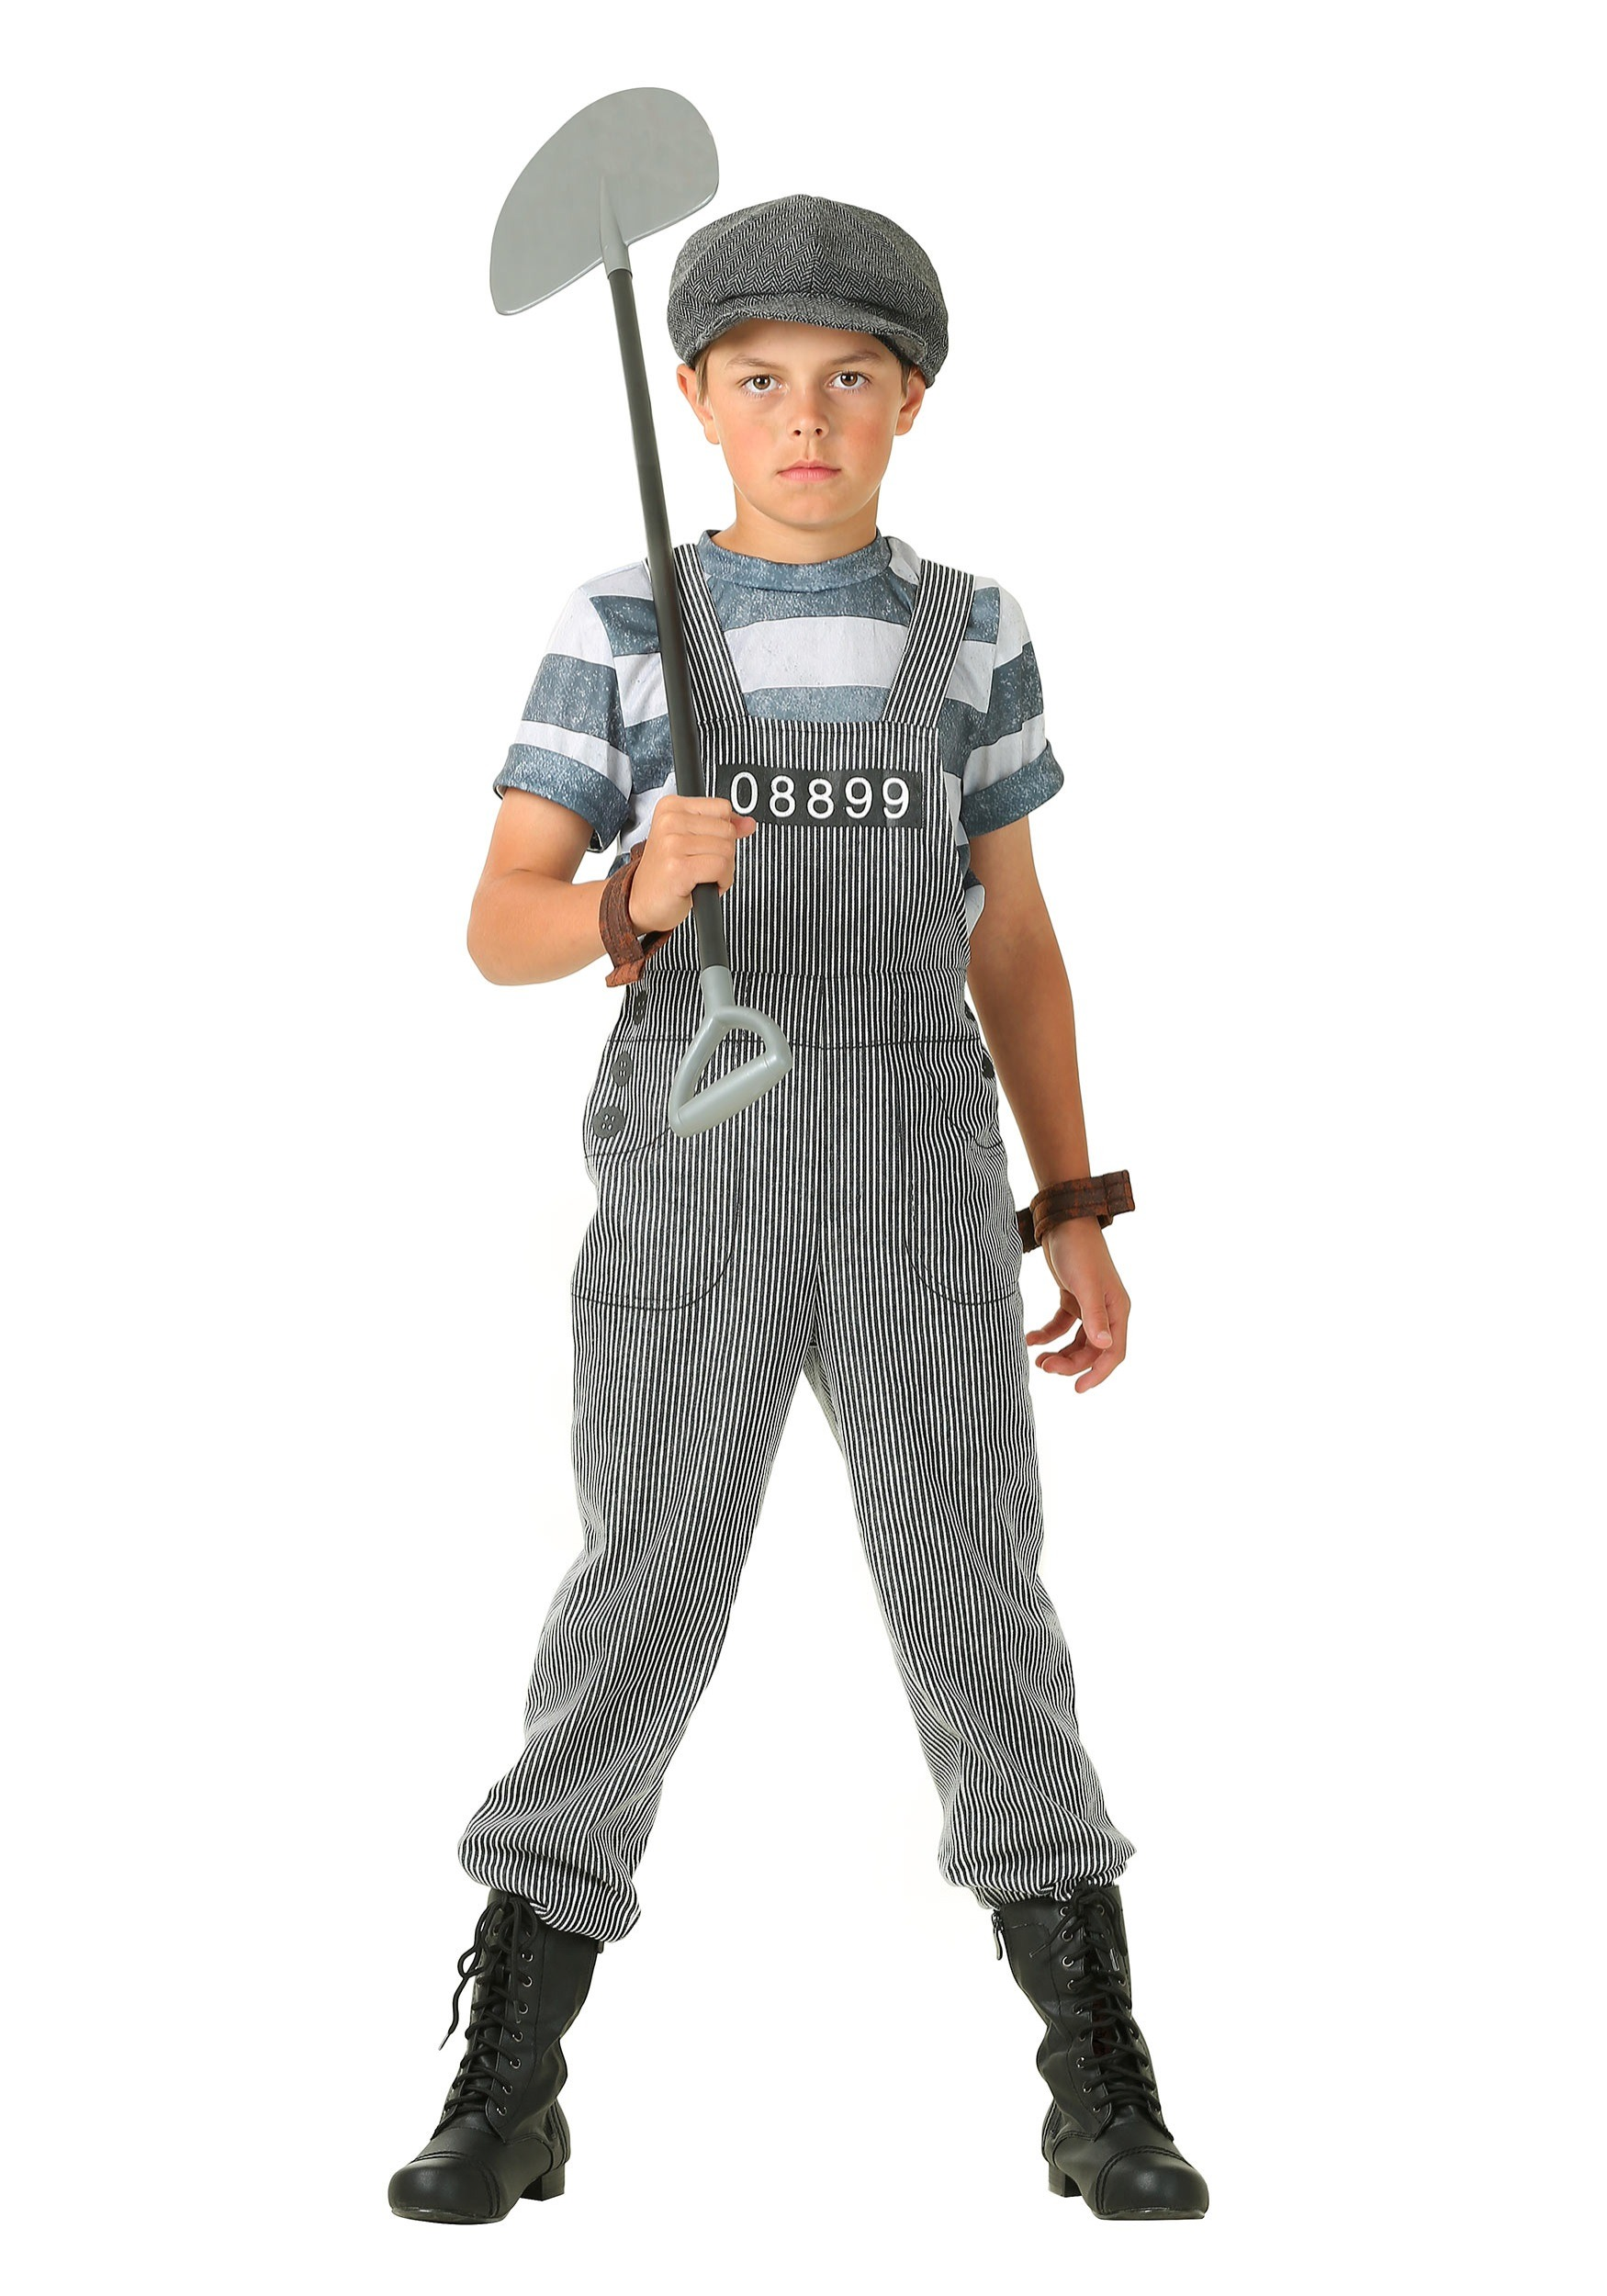 sc 1 st  Halloween Costumes : kids prison costume  - Germanpascual.Com